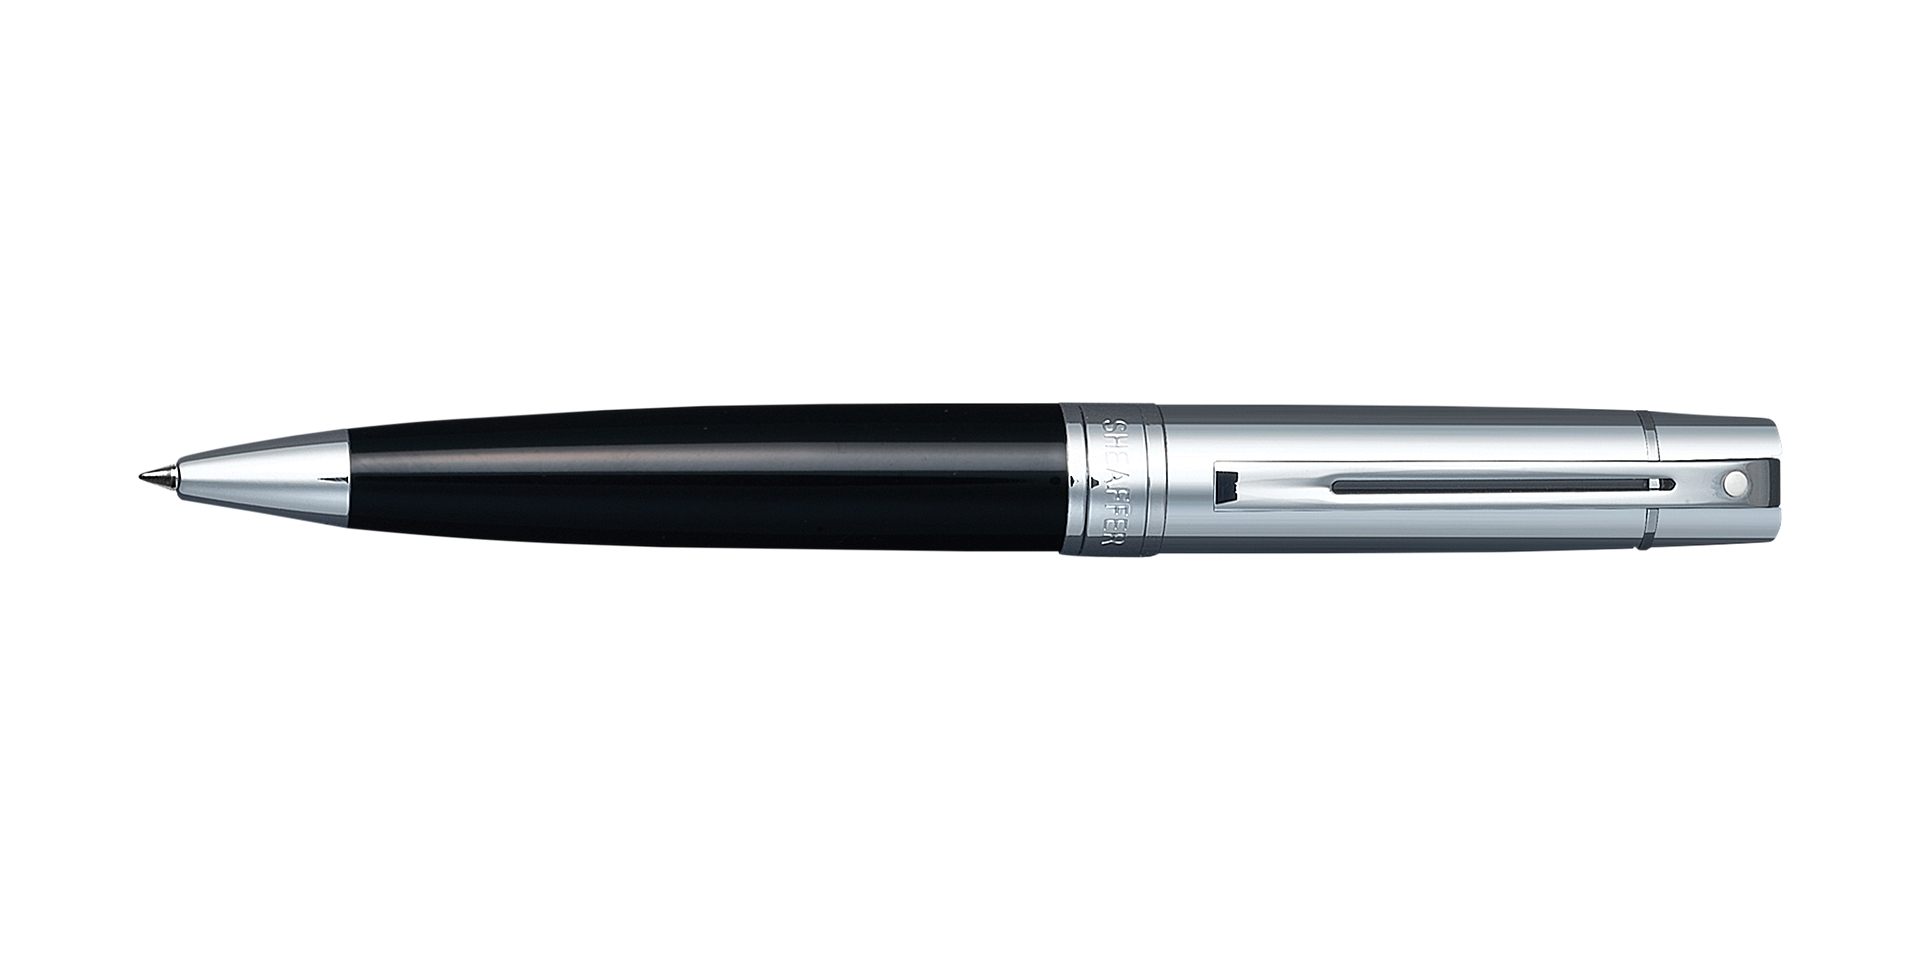 Cross Sheaffer 300 Glossy Black Barrel with Bright Chrome Cap Ballpoint Pen Picture